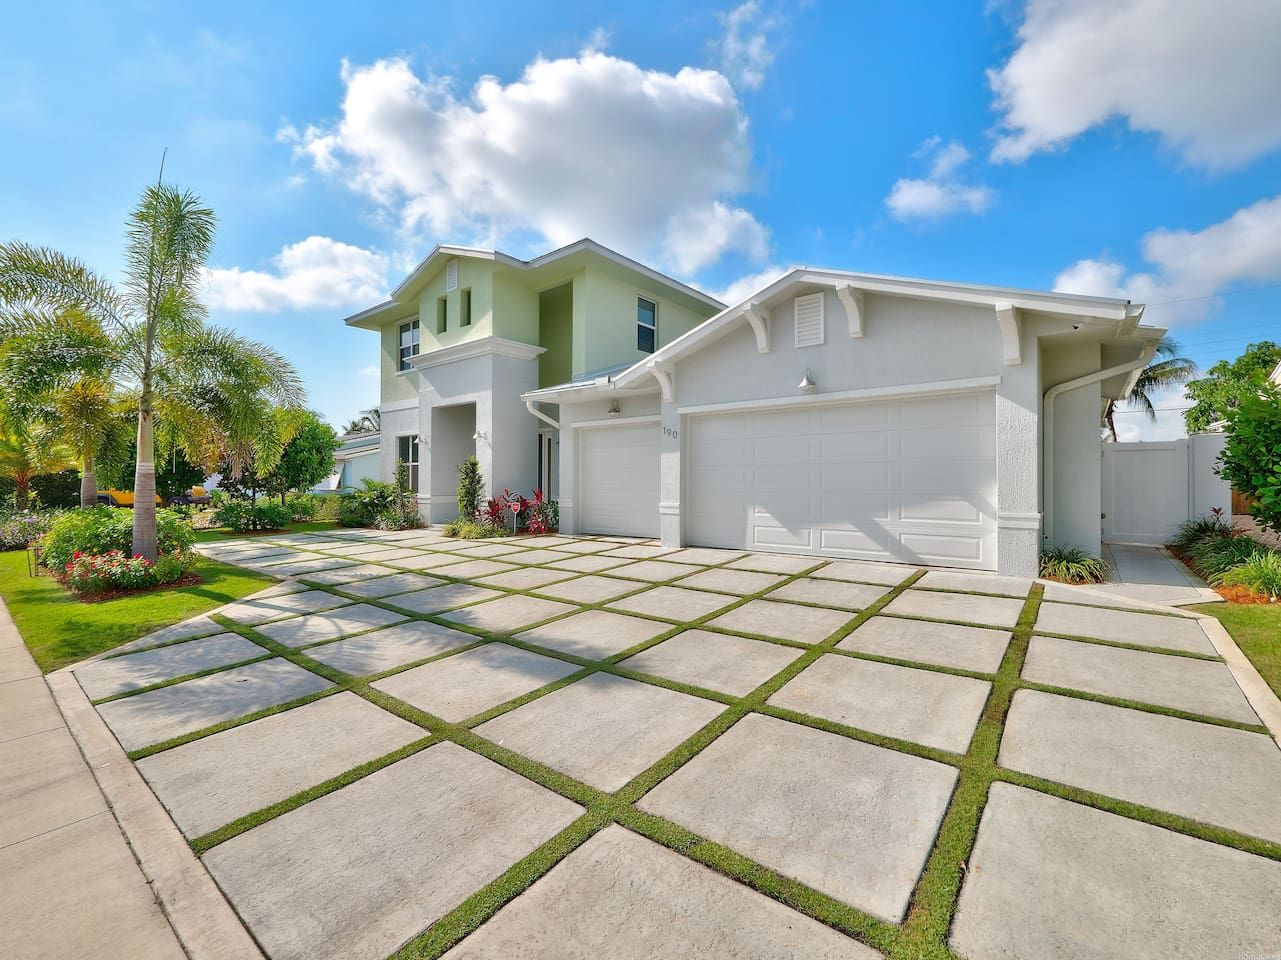 5 Star 5 Bedroom Waterfront Paradise Houses For Rent In West Palm Beach Vacation Home House Rental Vacation Rental